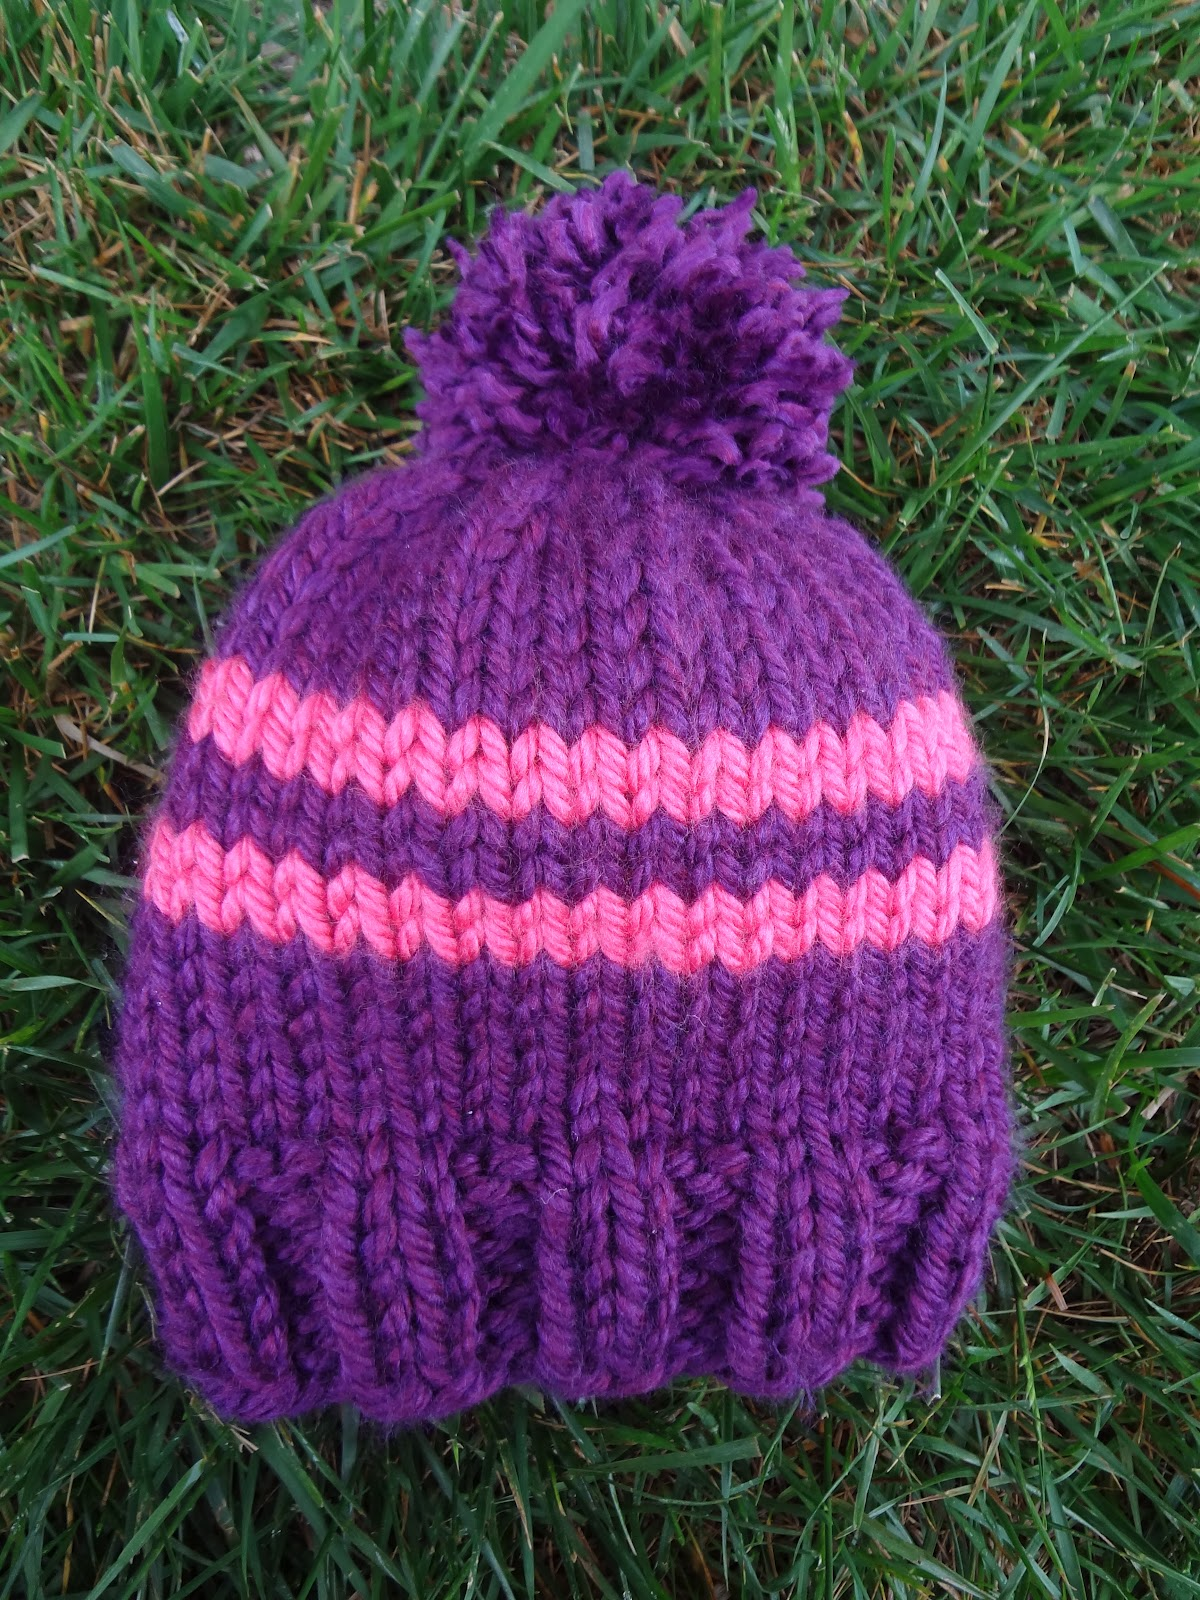 Free Knit Patterns For Toddlers : Fiber Flux: Free Knitting Pattern! Preschooler Rugby Hat